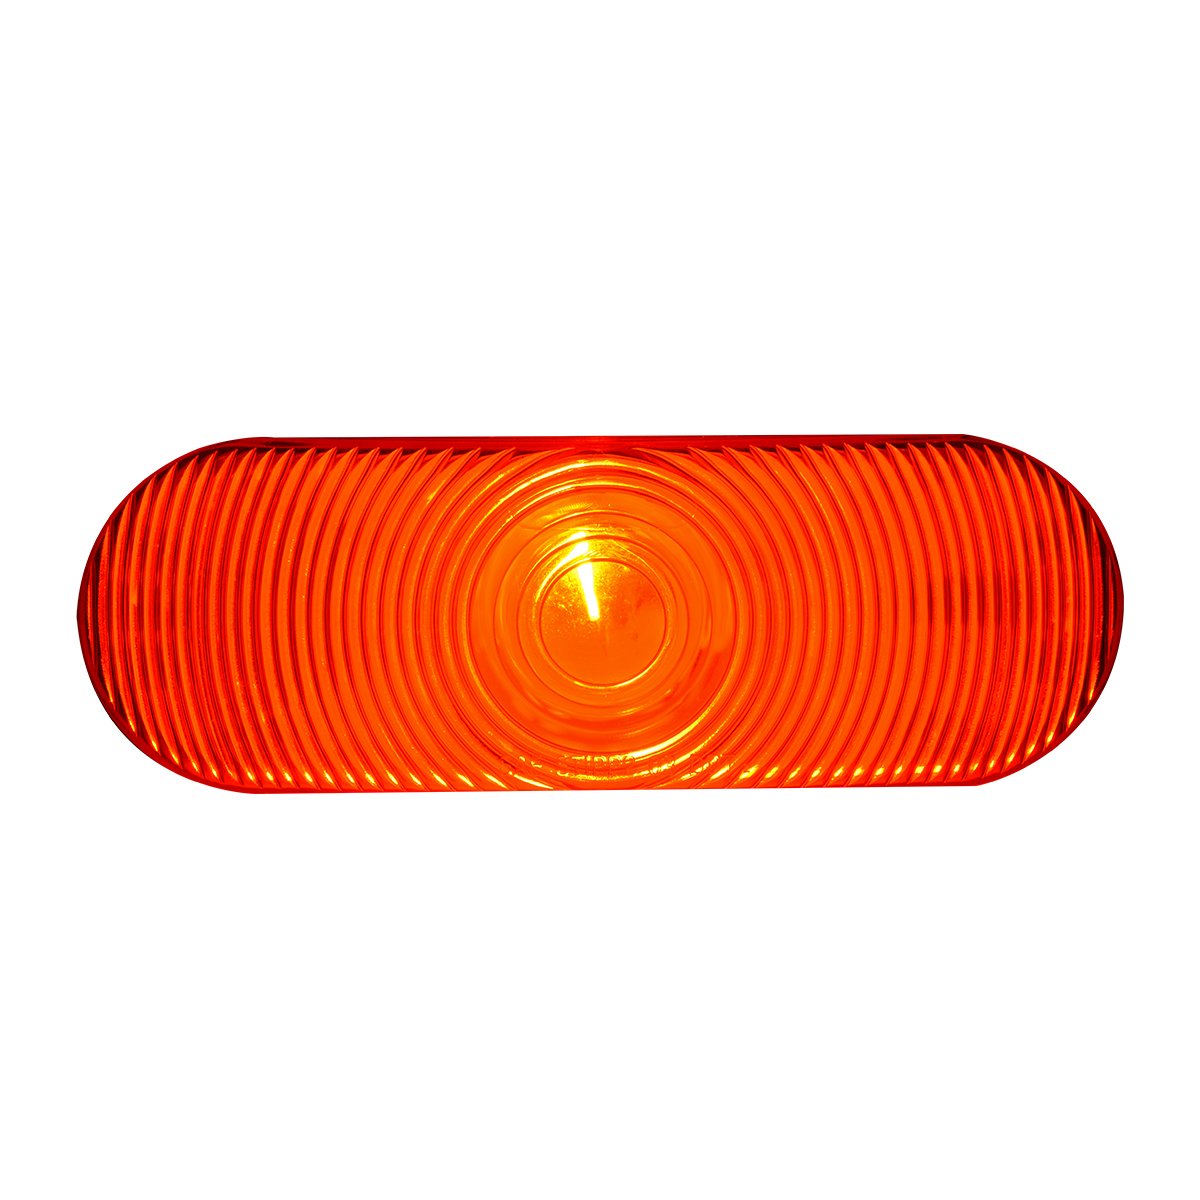 #80805 - Oval Incandescent Flat Red/Red Light - Slanted